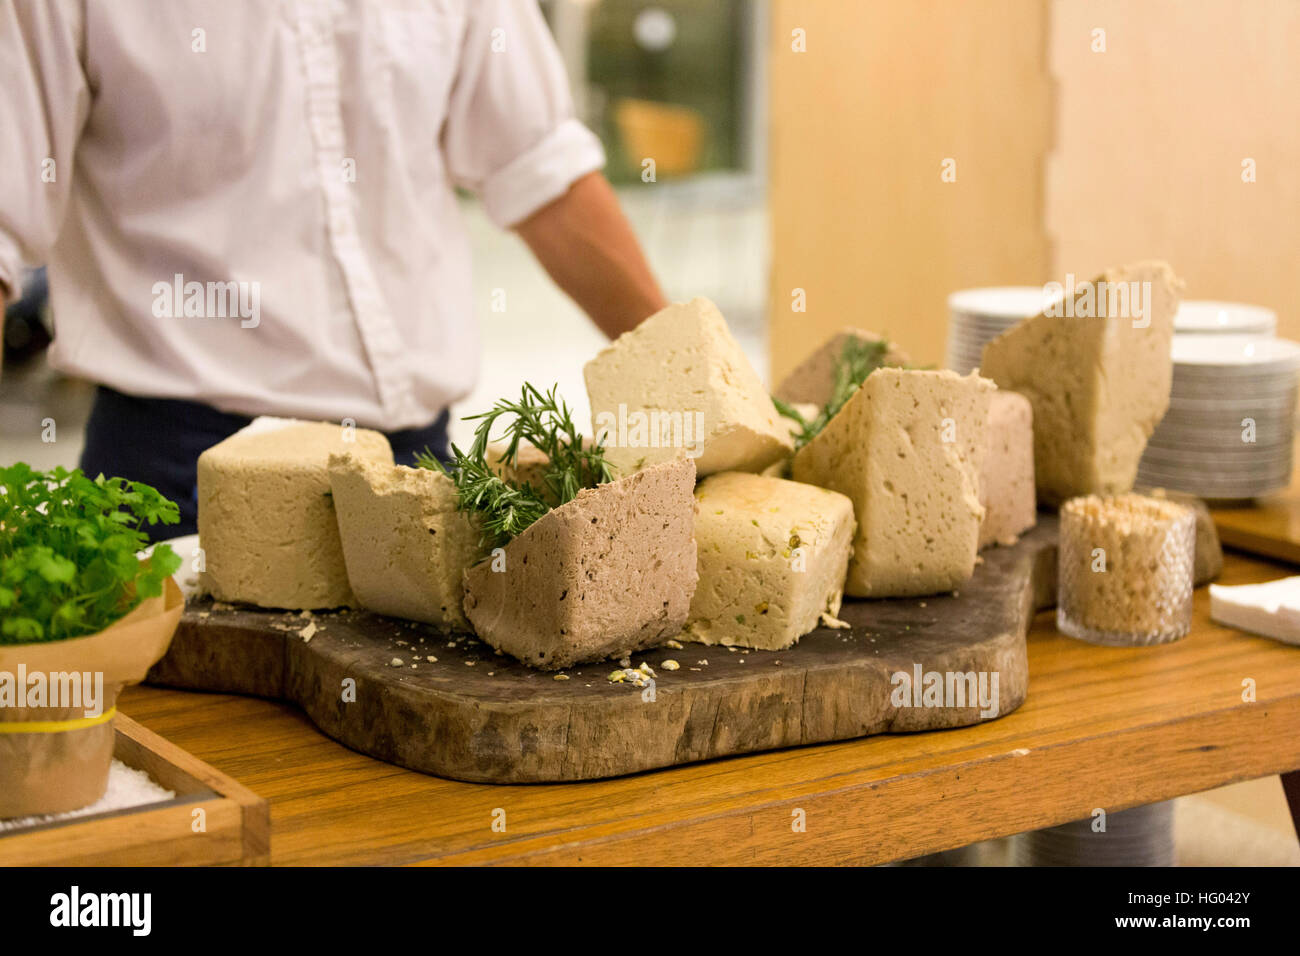 Blocks of Halvah of various flavours - Stock Image